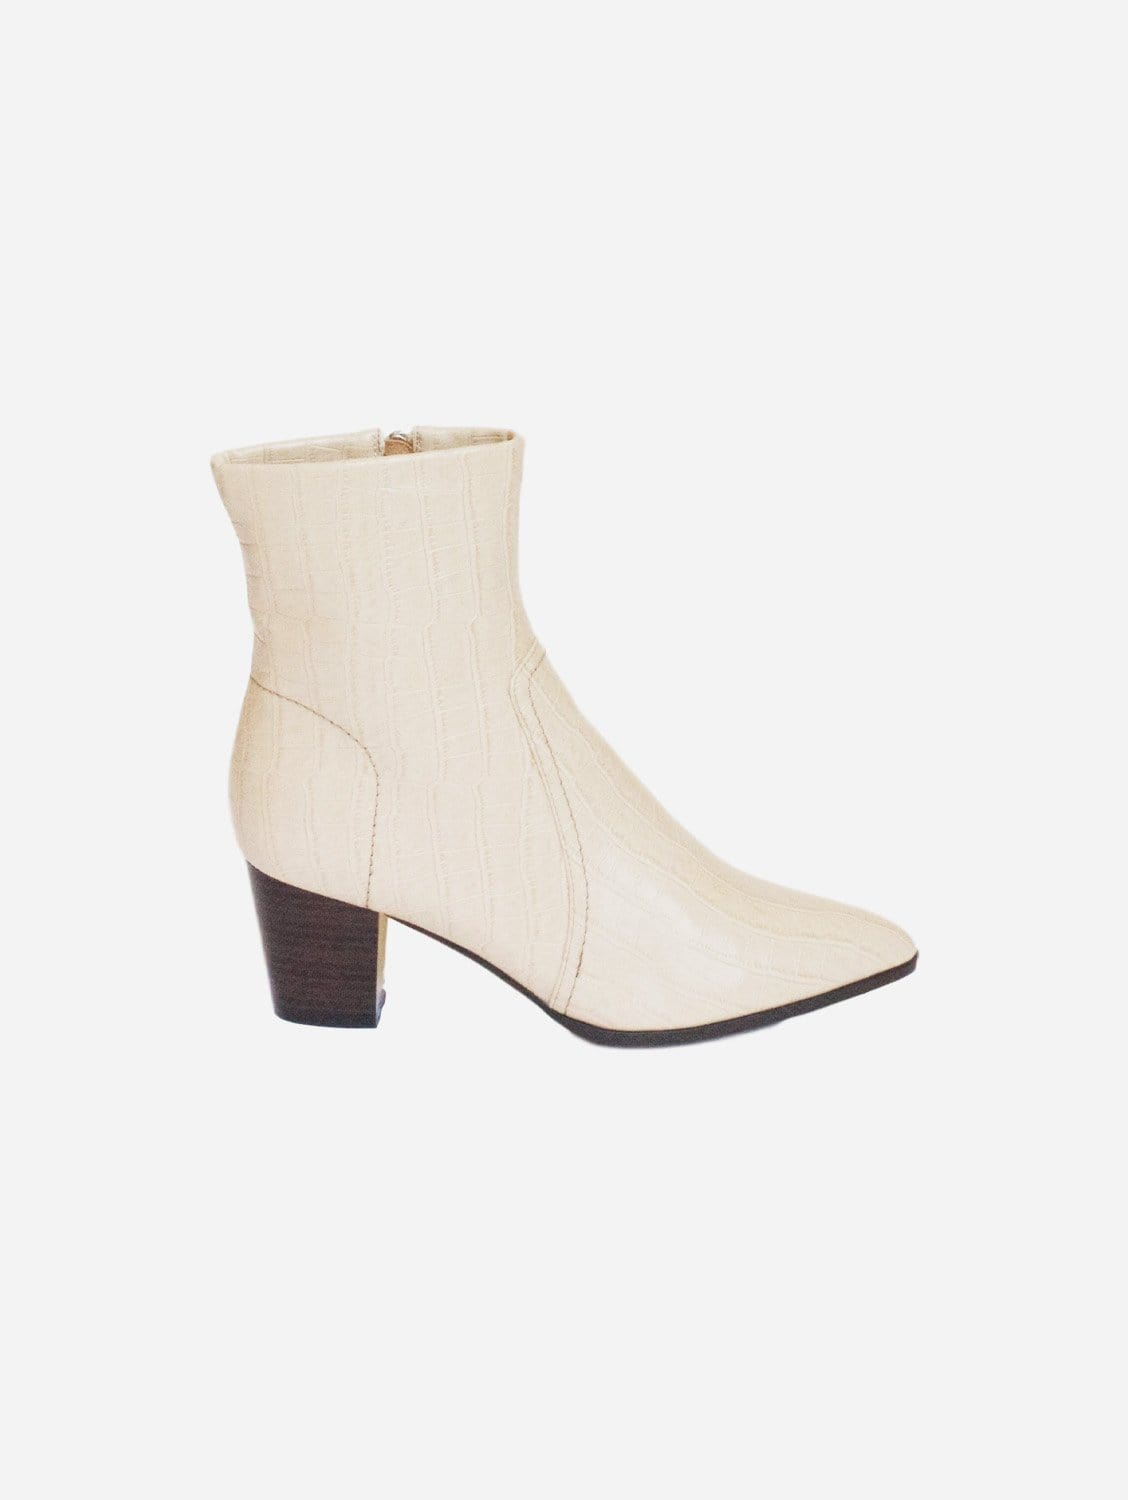 Kali Cowboy Style Up-Cycled Vegan Leather Boot | Cream Croc